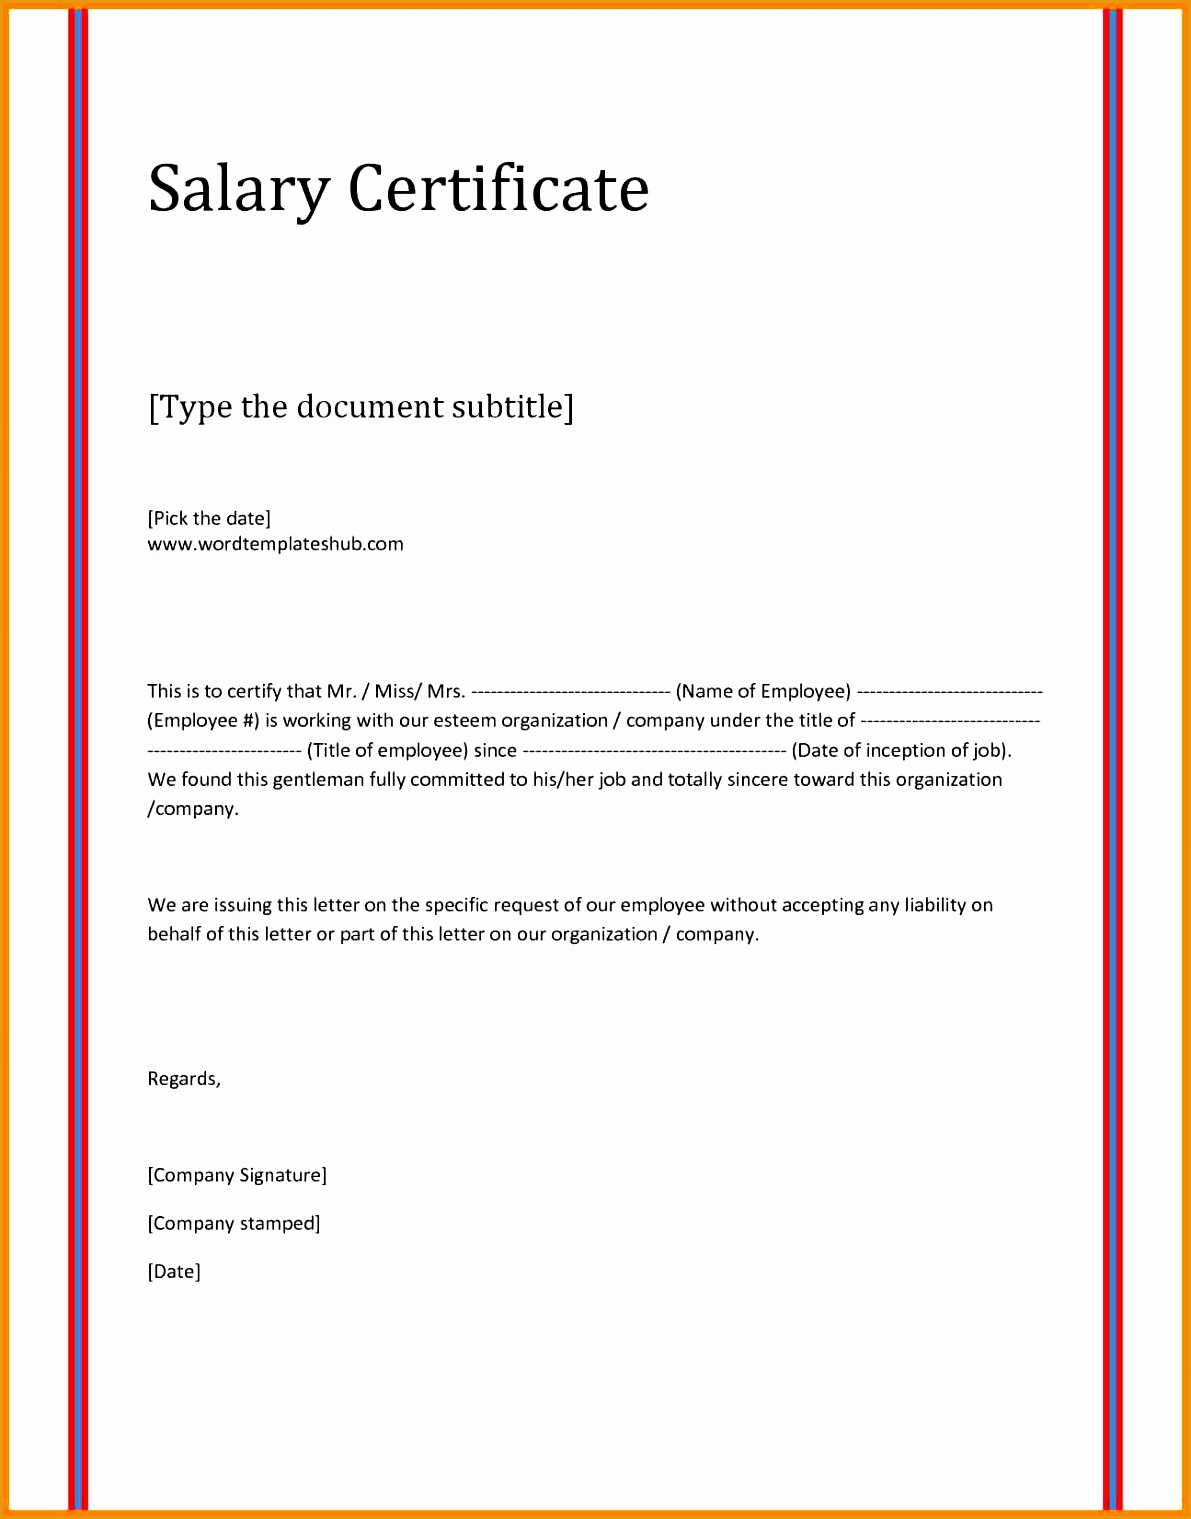 7 salary proof letter15191191